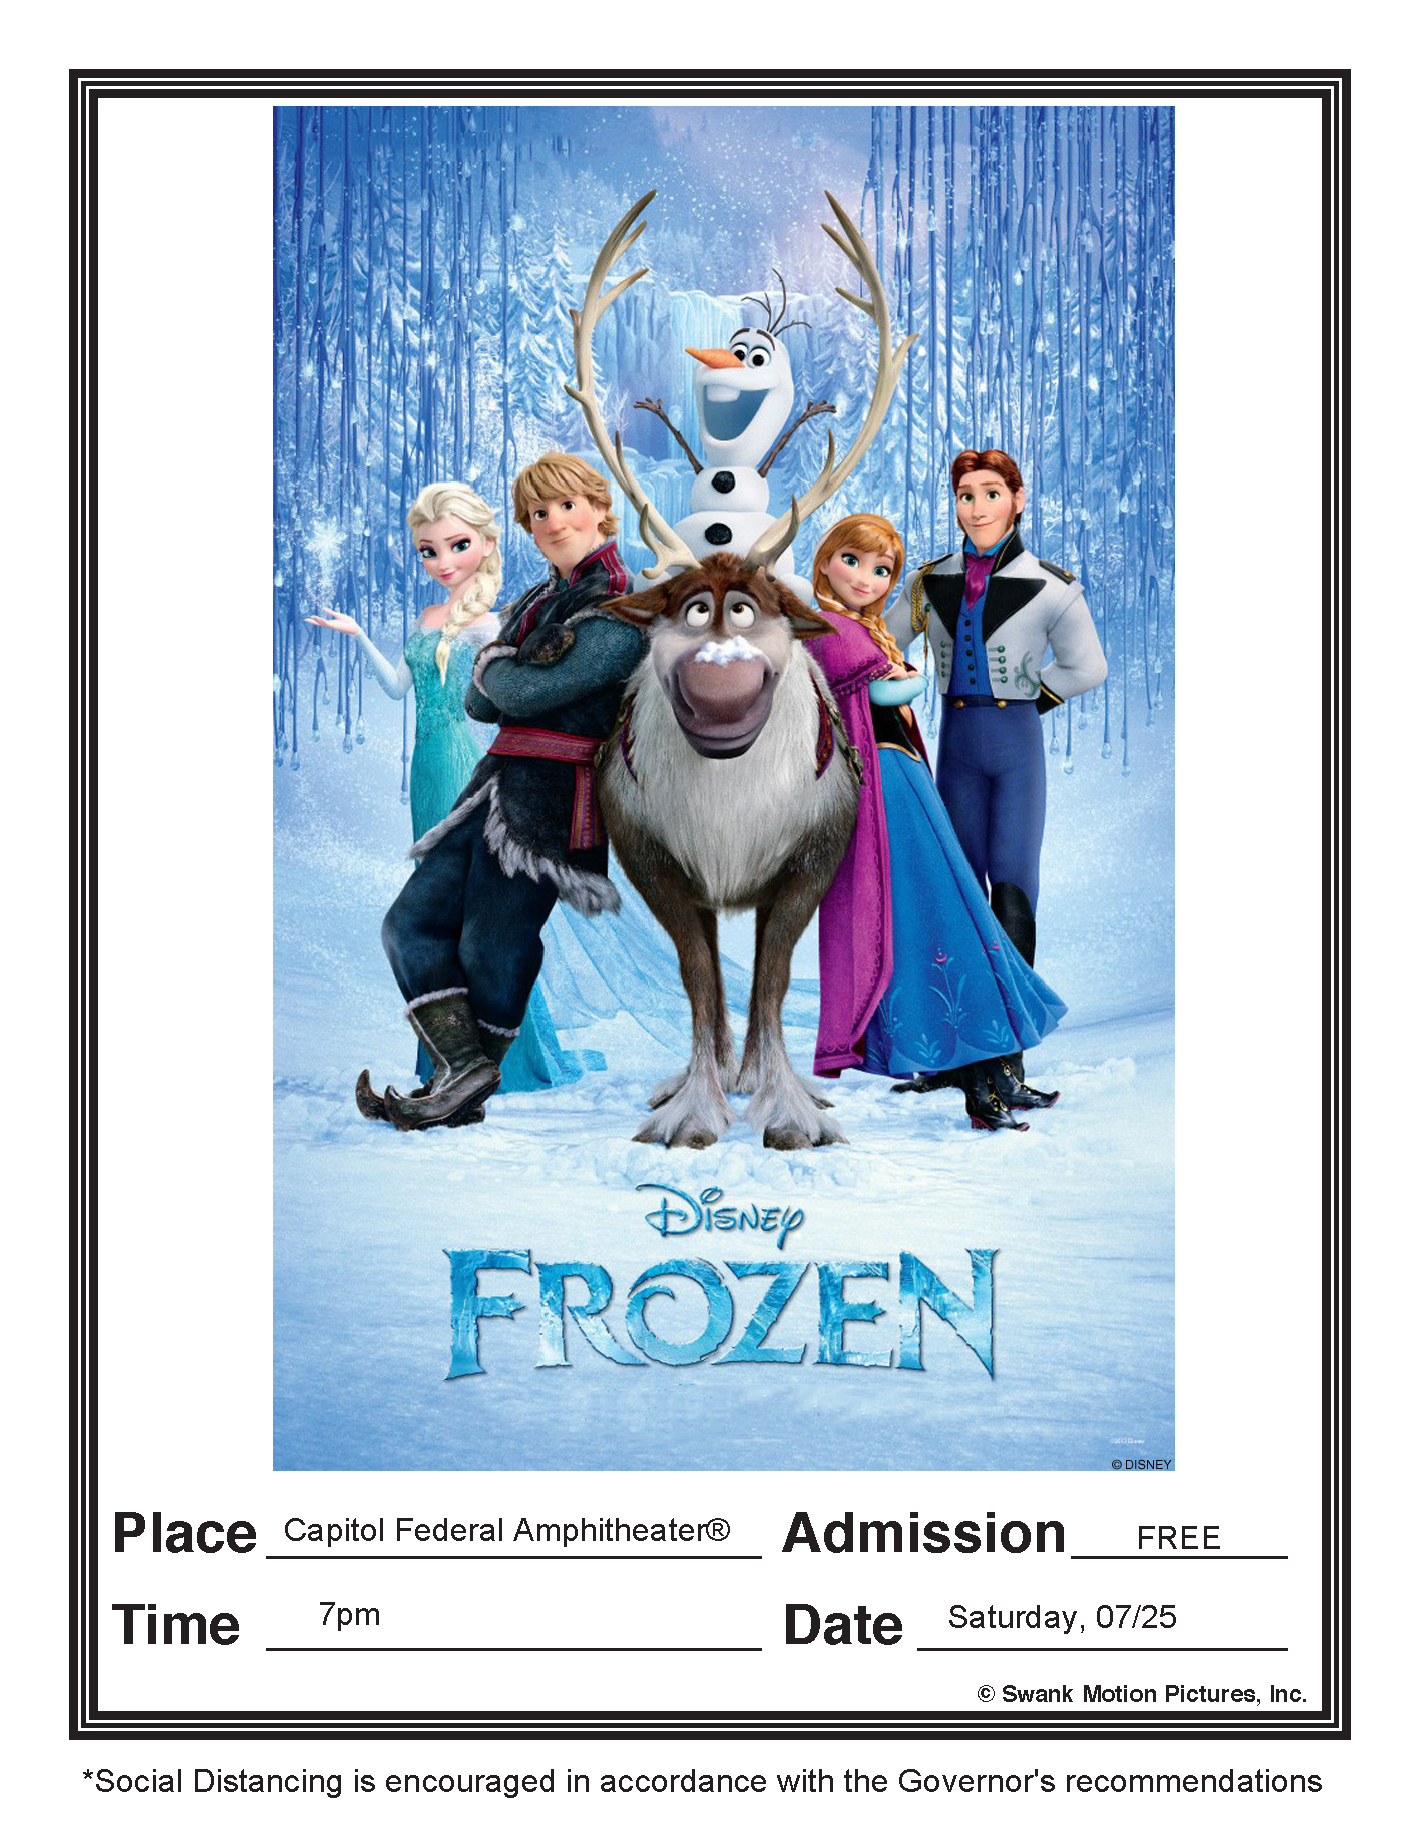 Frozen - 07/25/20 7pm